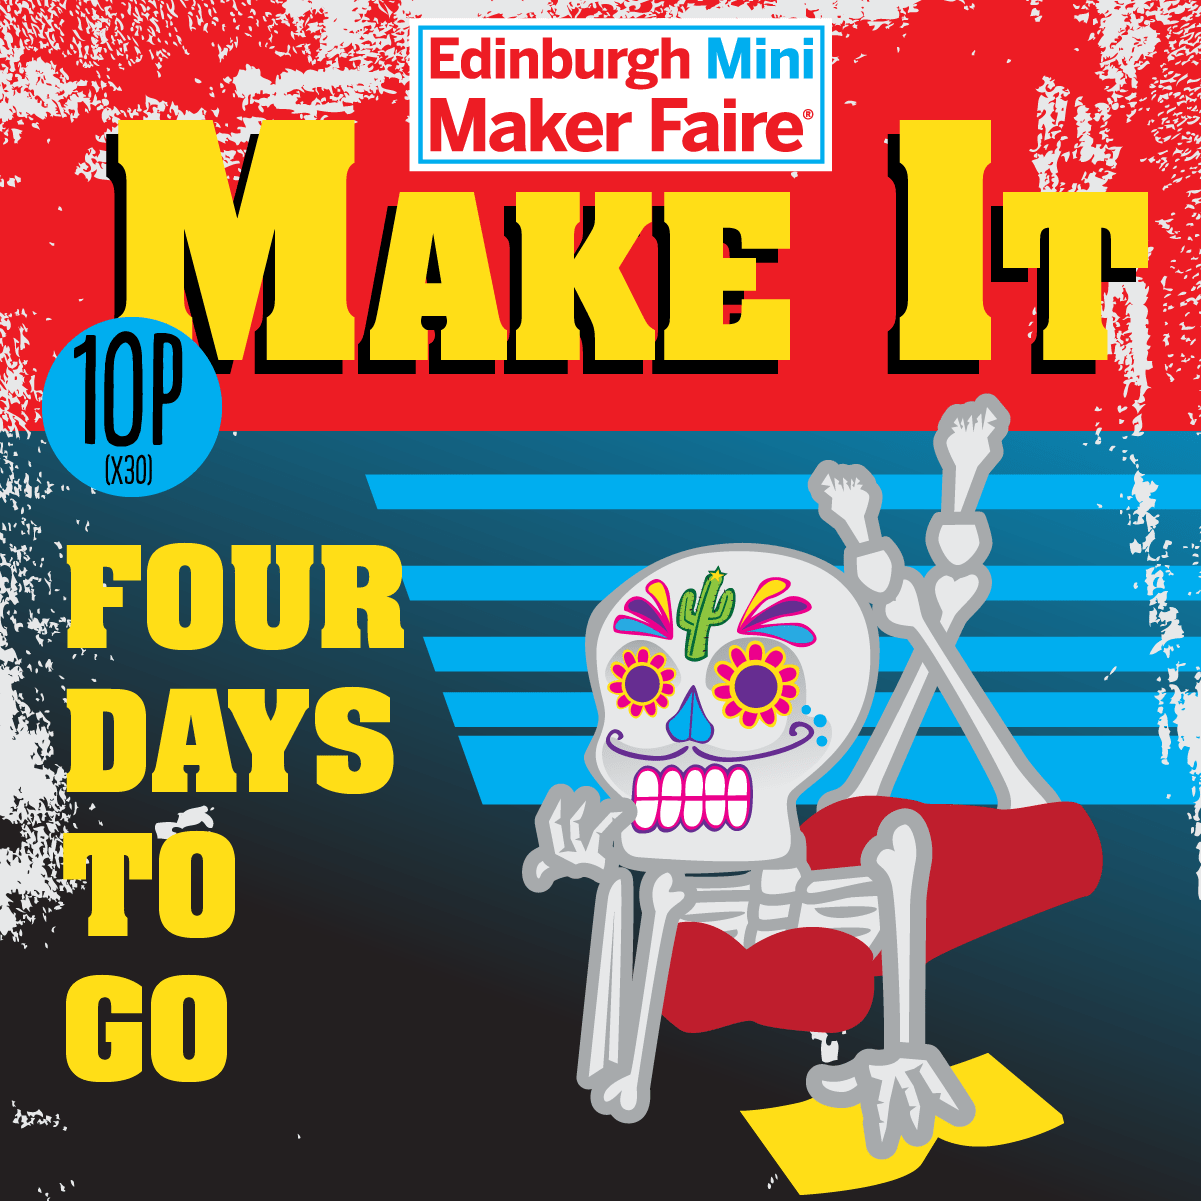 Edinburgh Mini Maker Faire Countdown Edinburgh Mini